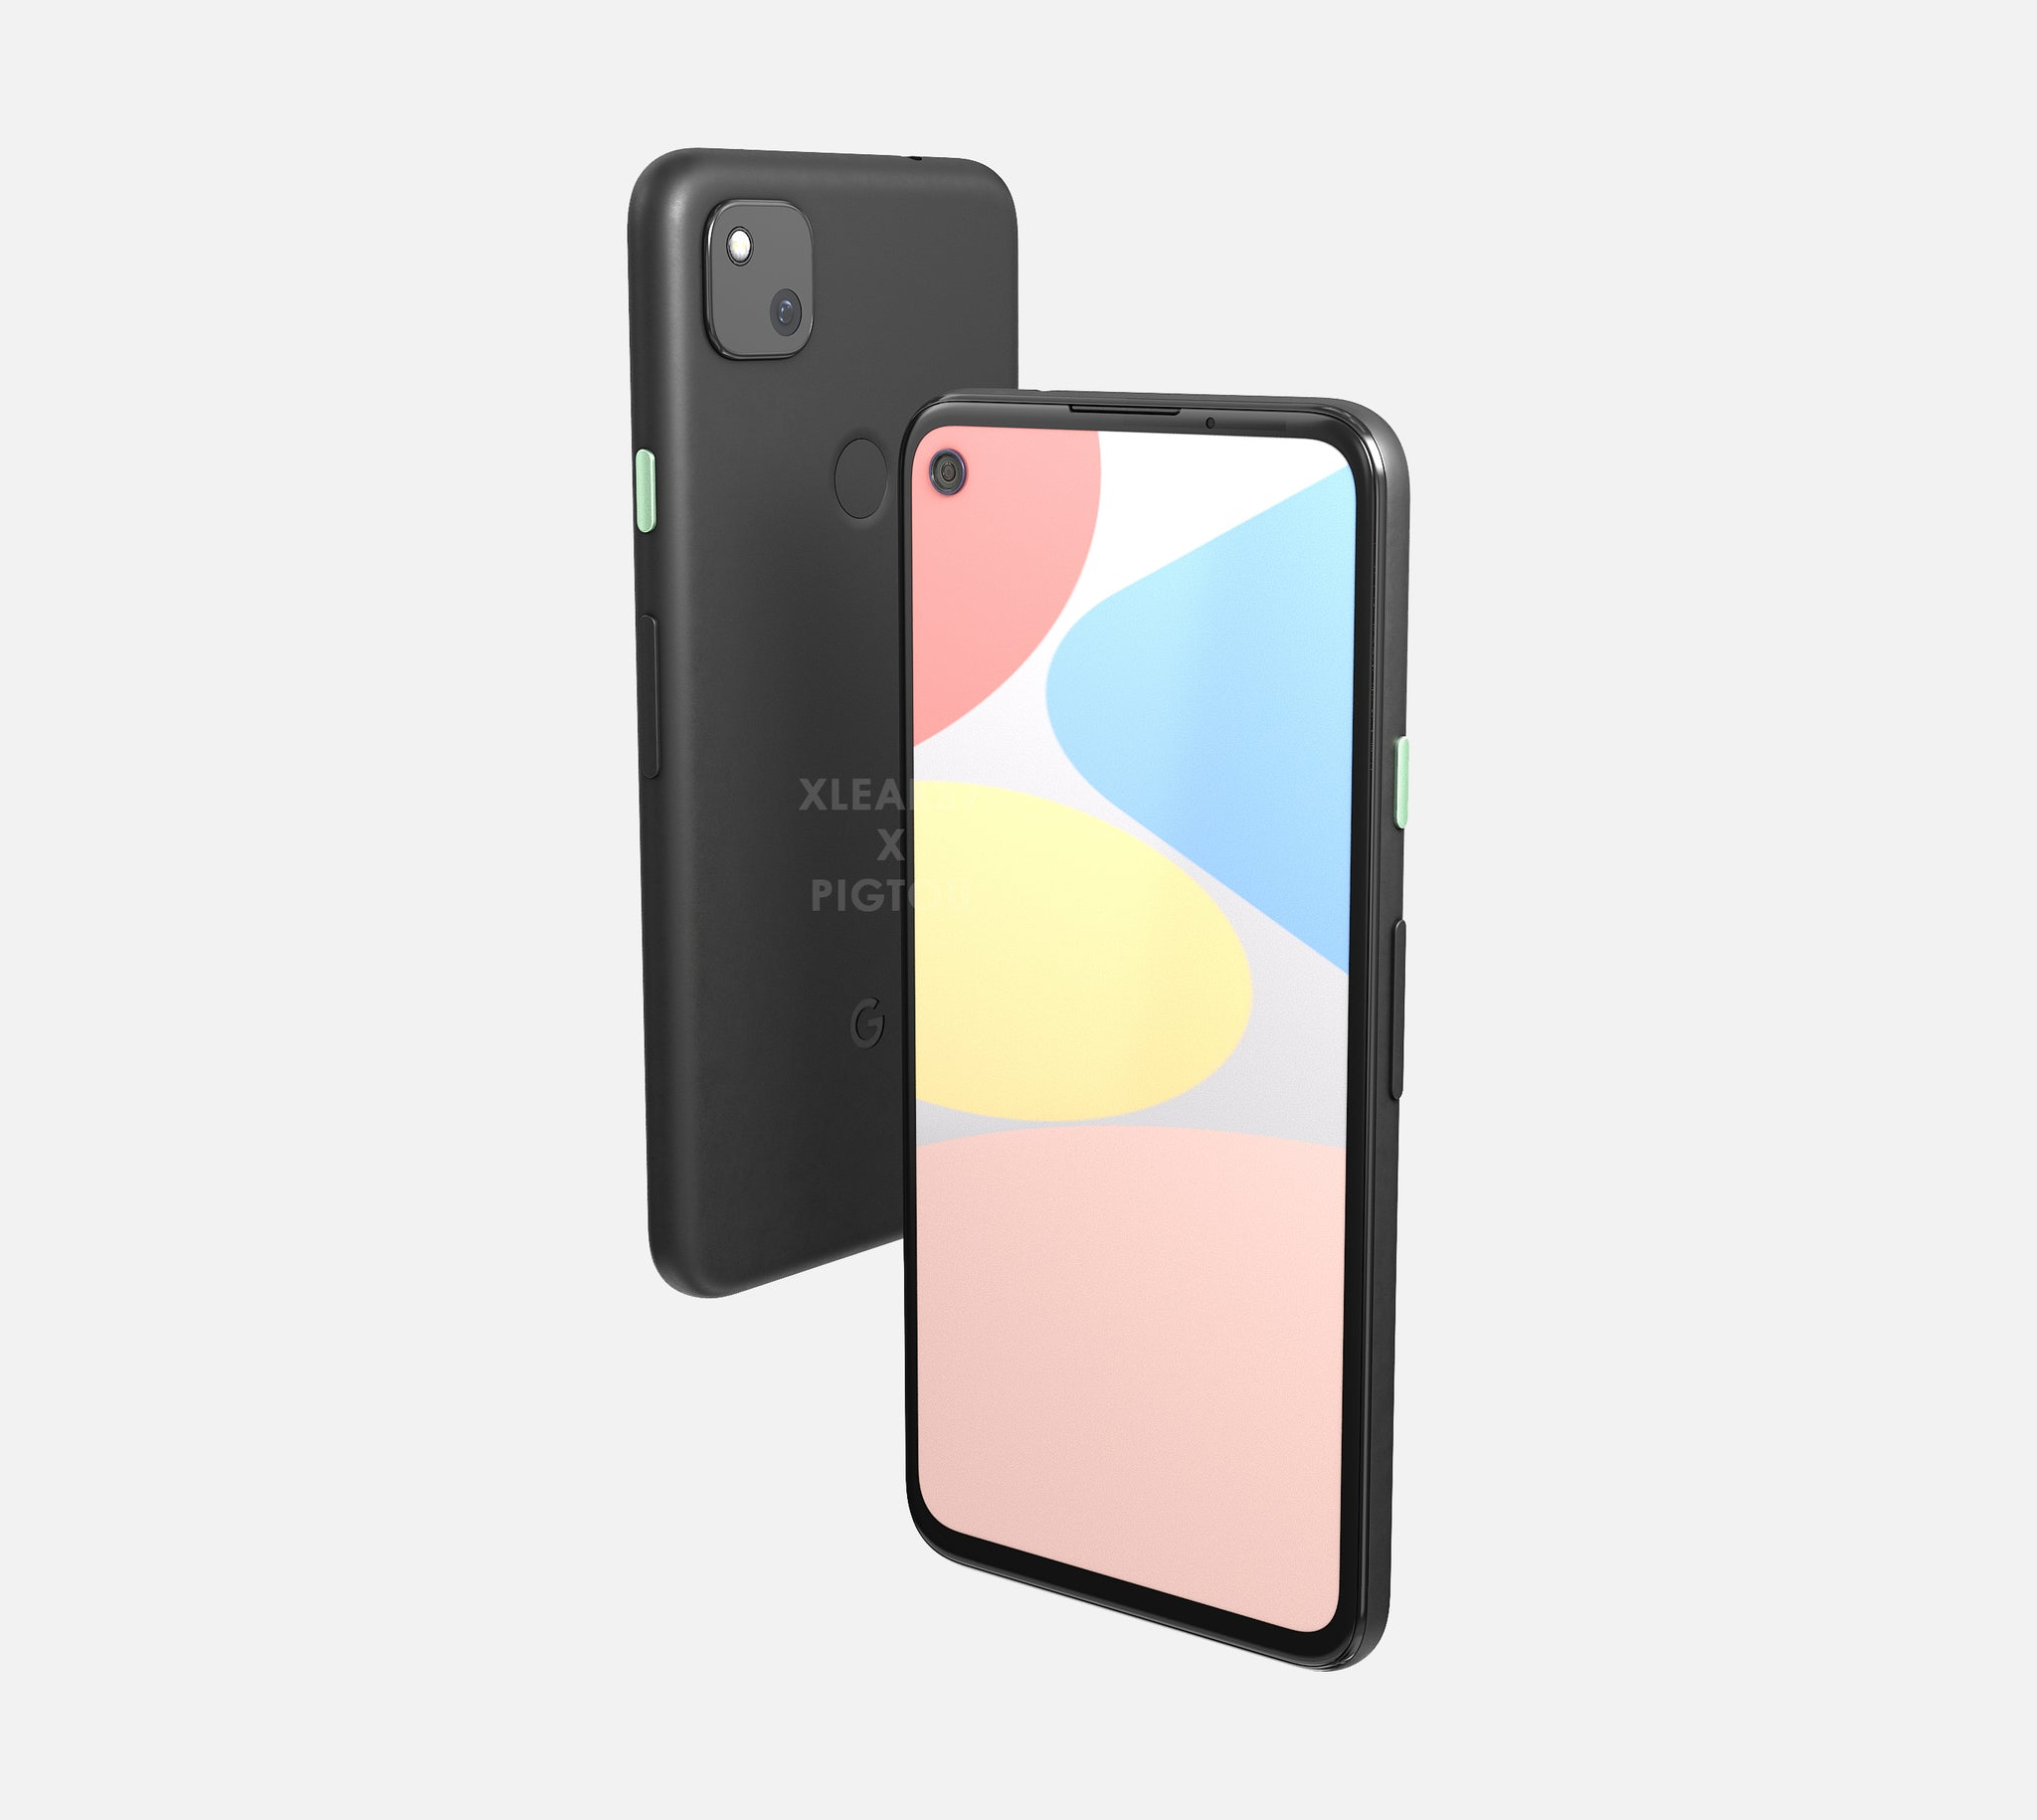 Google Pixel 4a - front and back